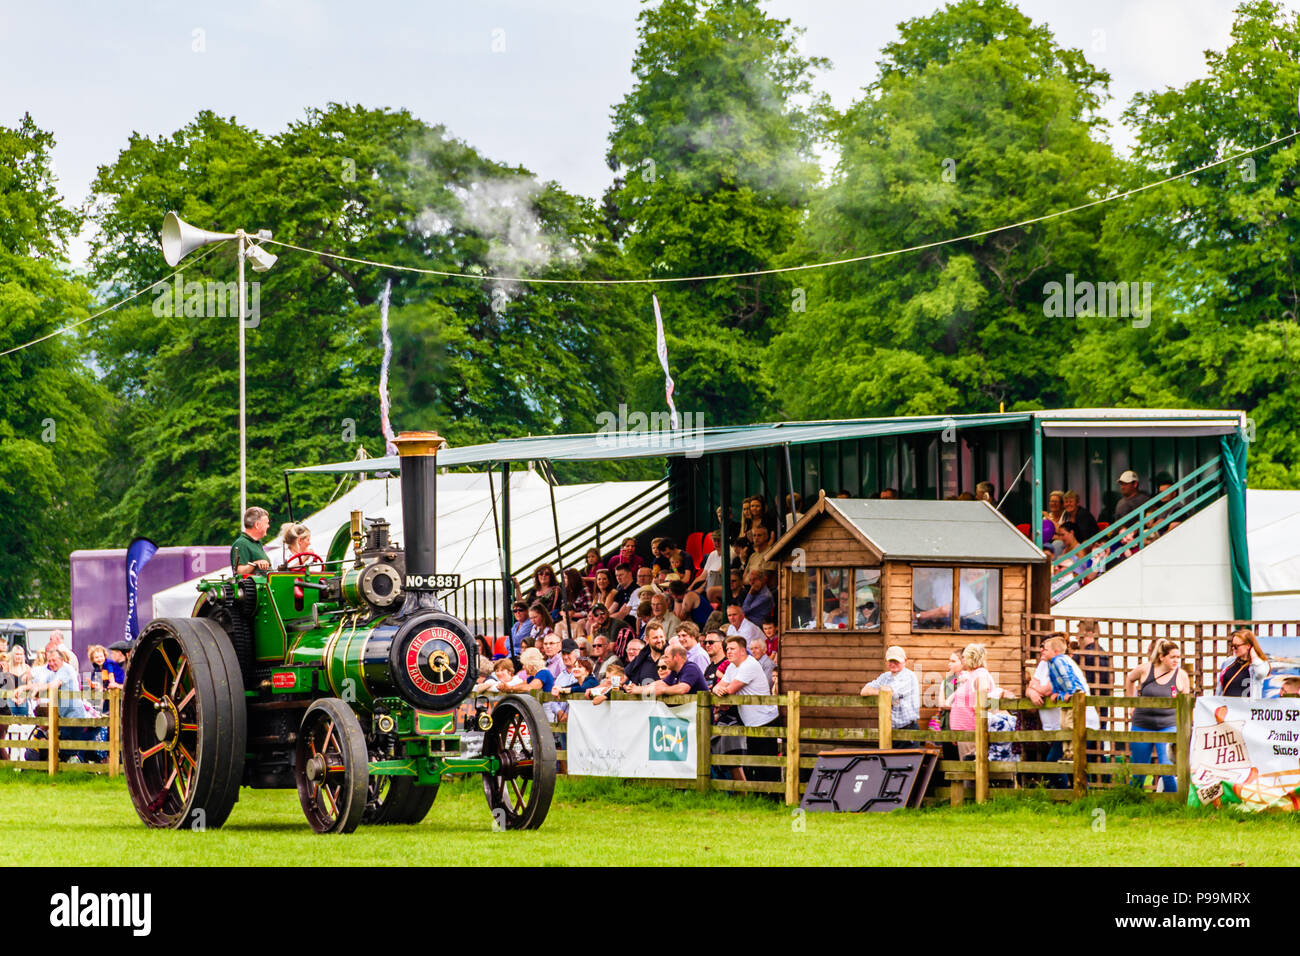 The Victorian steam engine 'Duke of Ongar' on display at the Northumberland County Show, Stocksfield. May 2018. - Stock Image